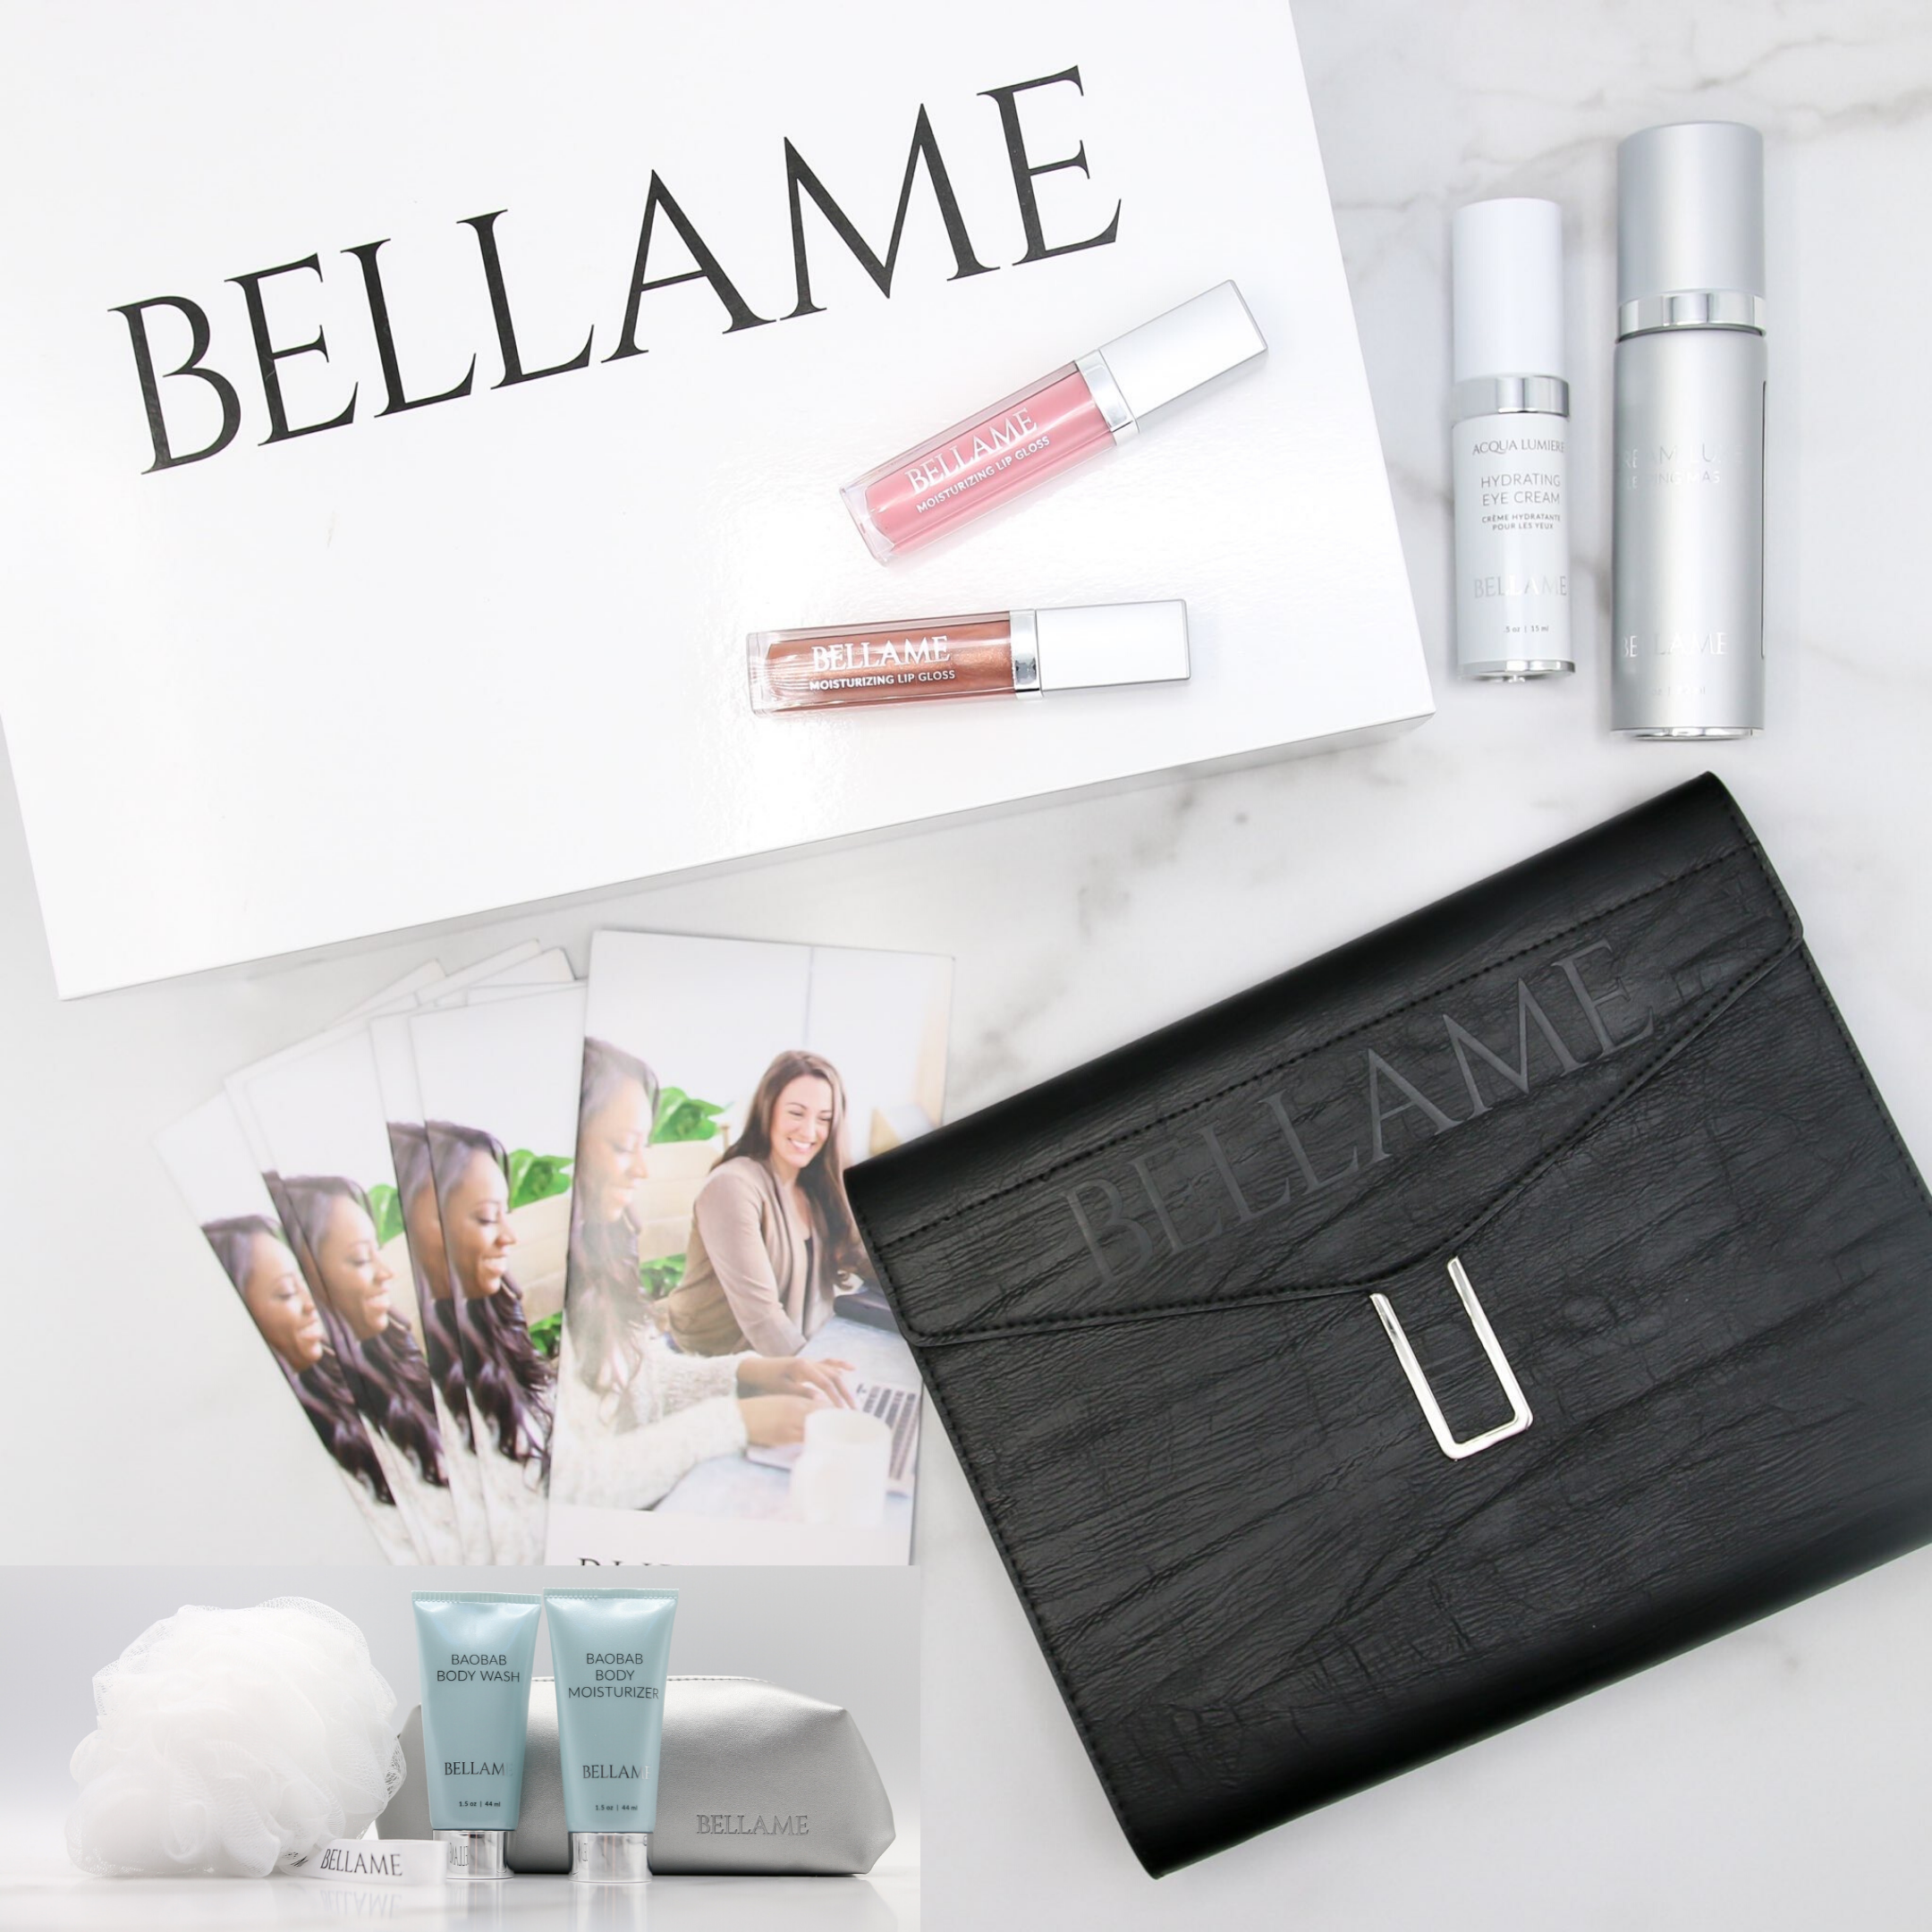 BELLAME Business Influencer Kit